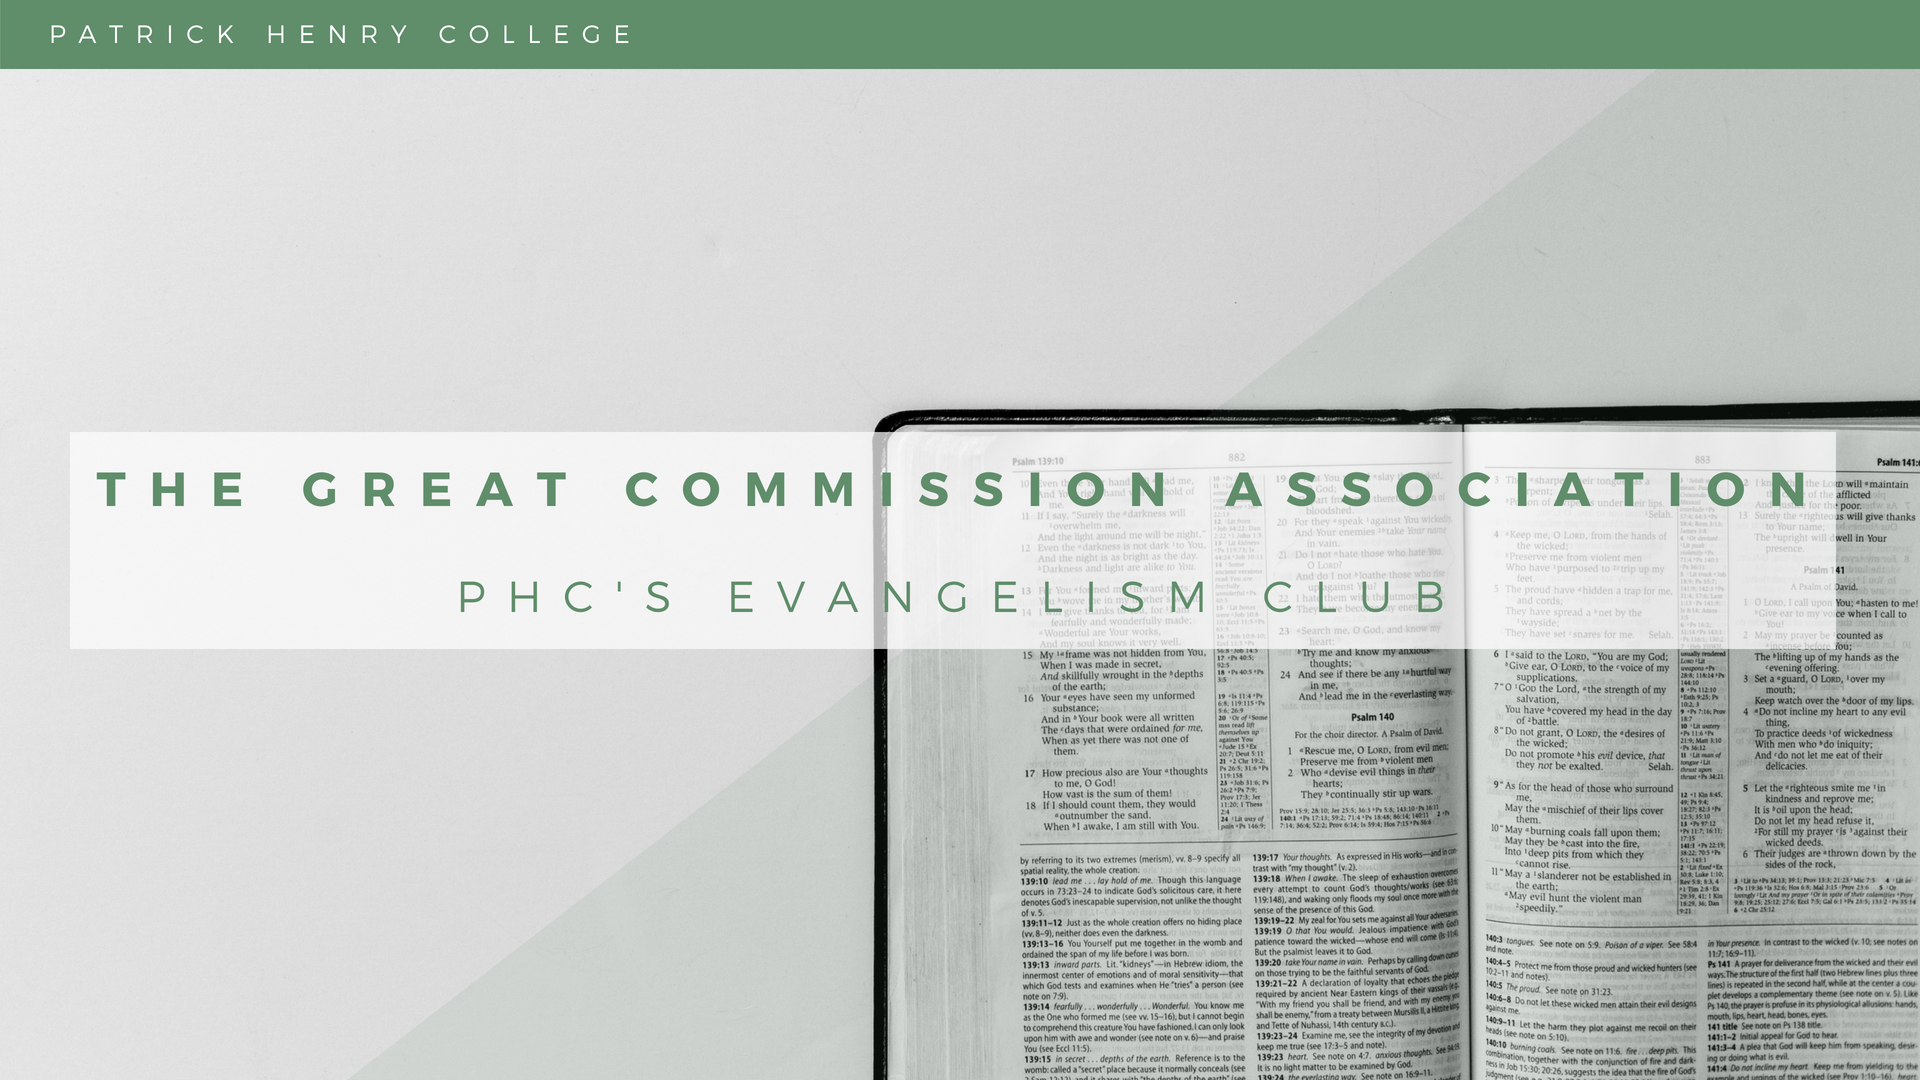 The Great Commission Association